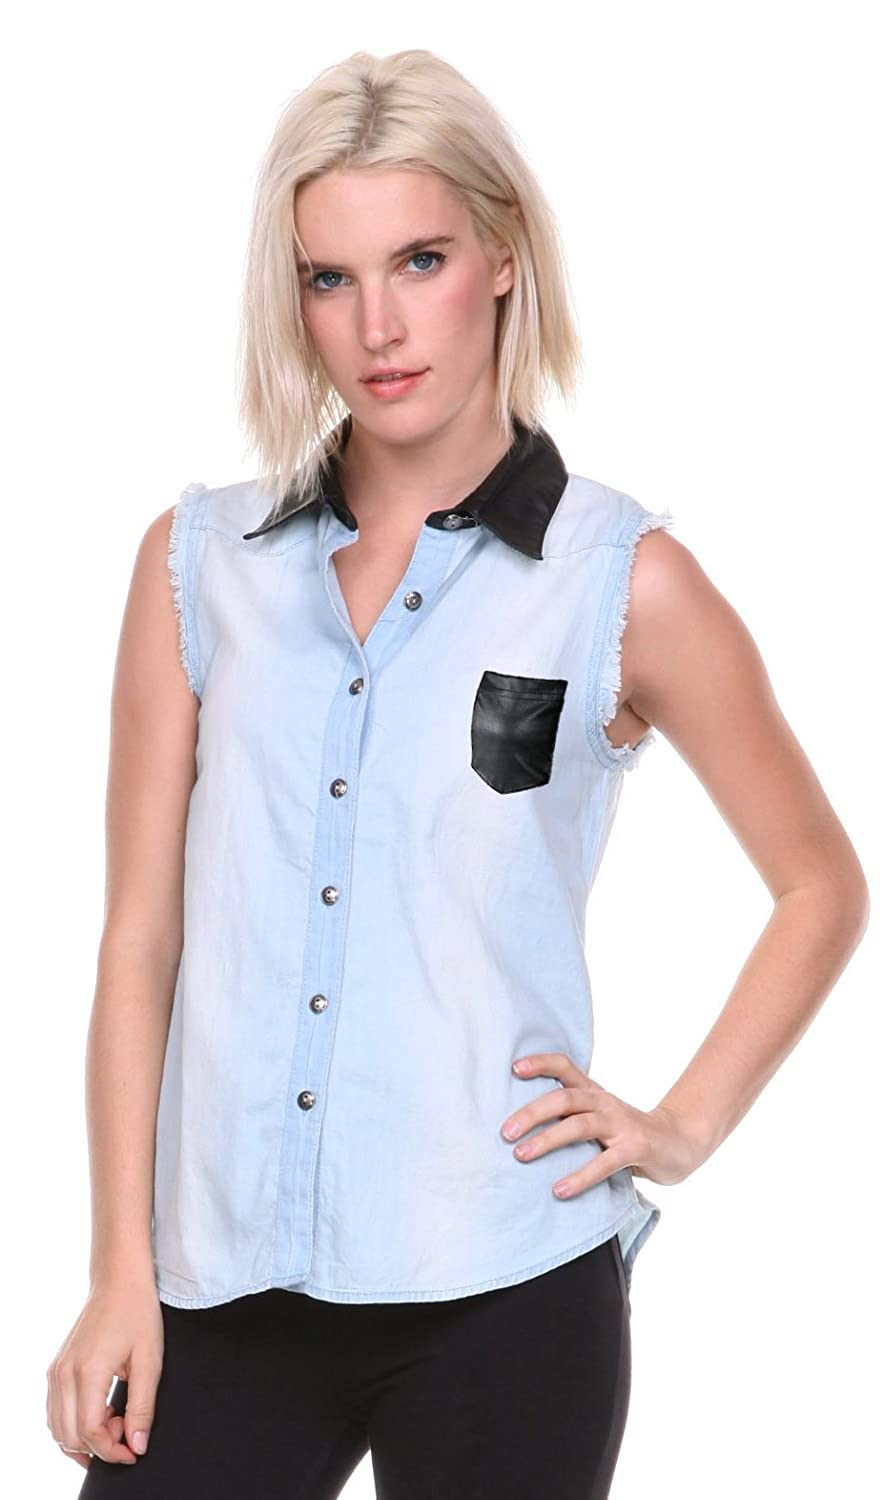 Stanzino@ Women's Sleeveless Denim Shirt